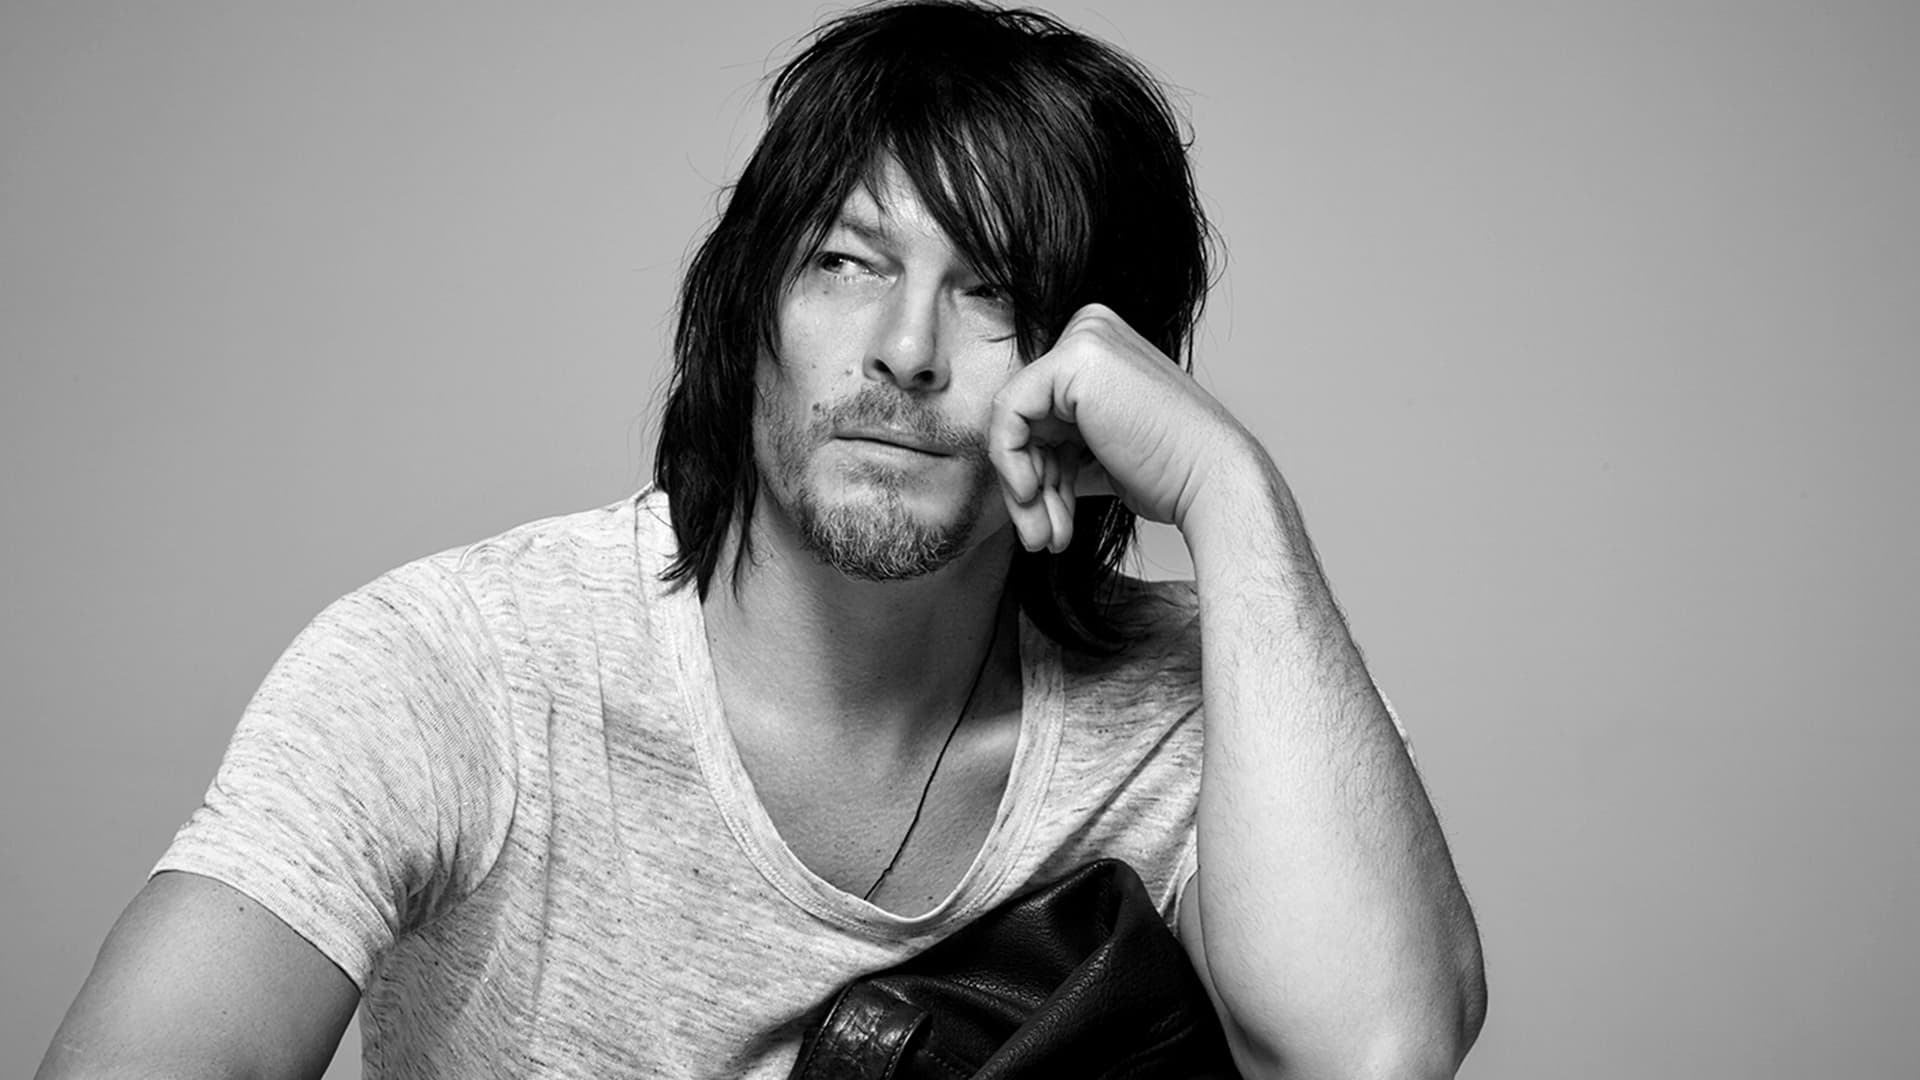 Norman Reedus Wallpapers HD 1080p 2017 For PC IPhone Android